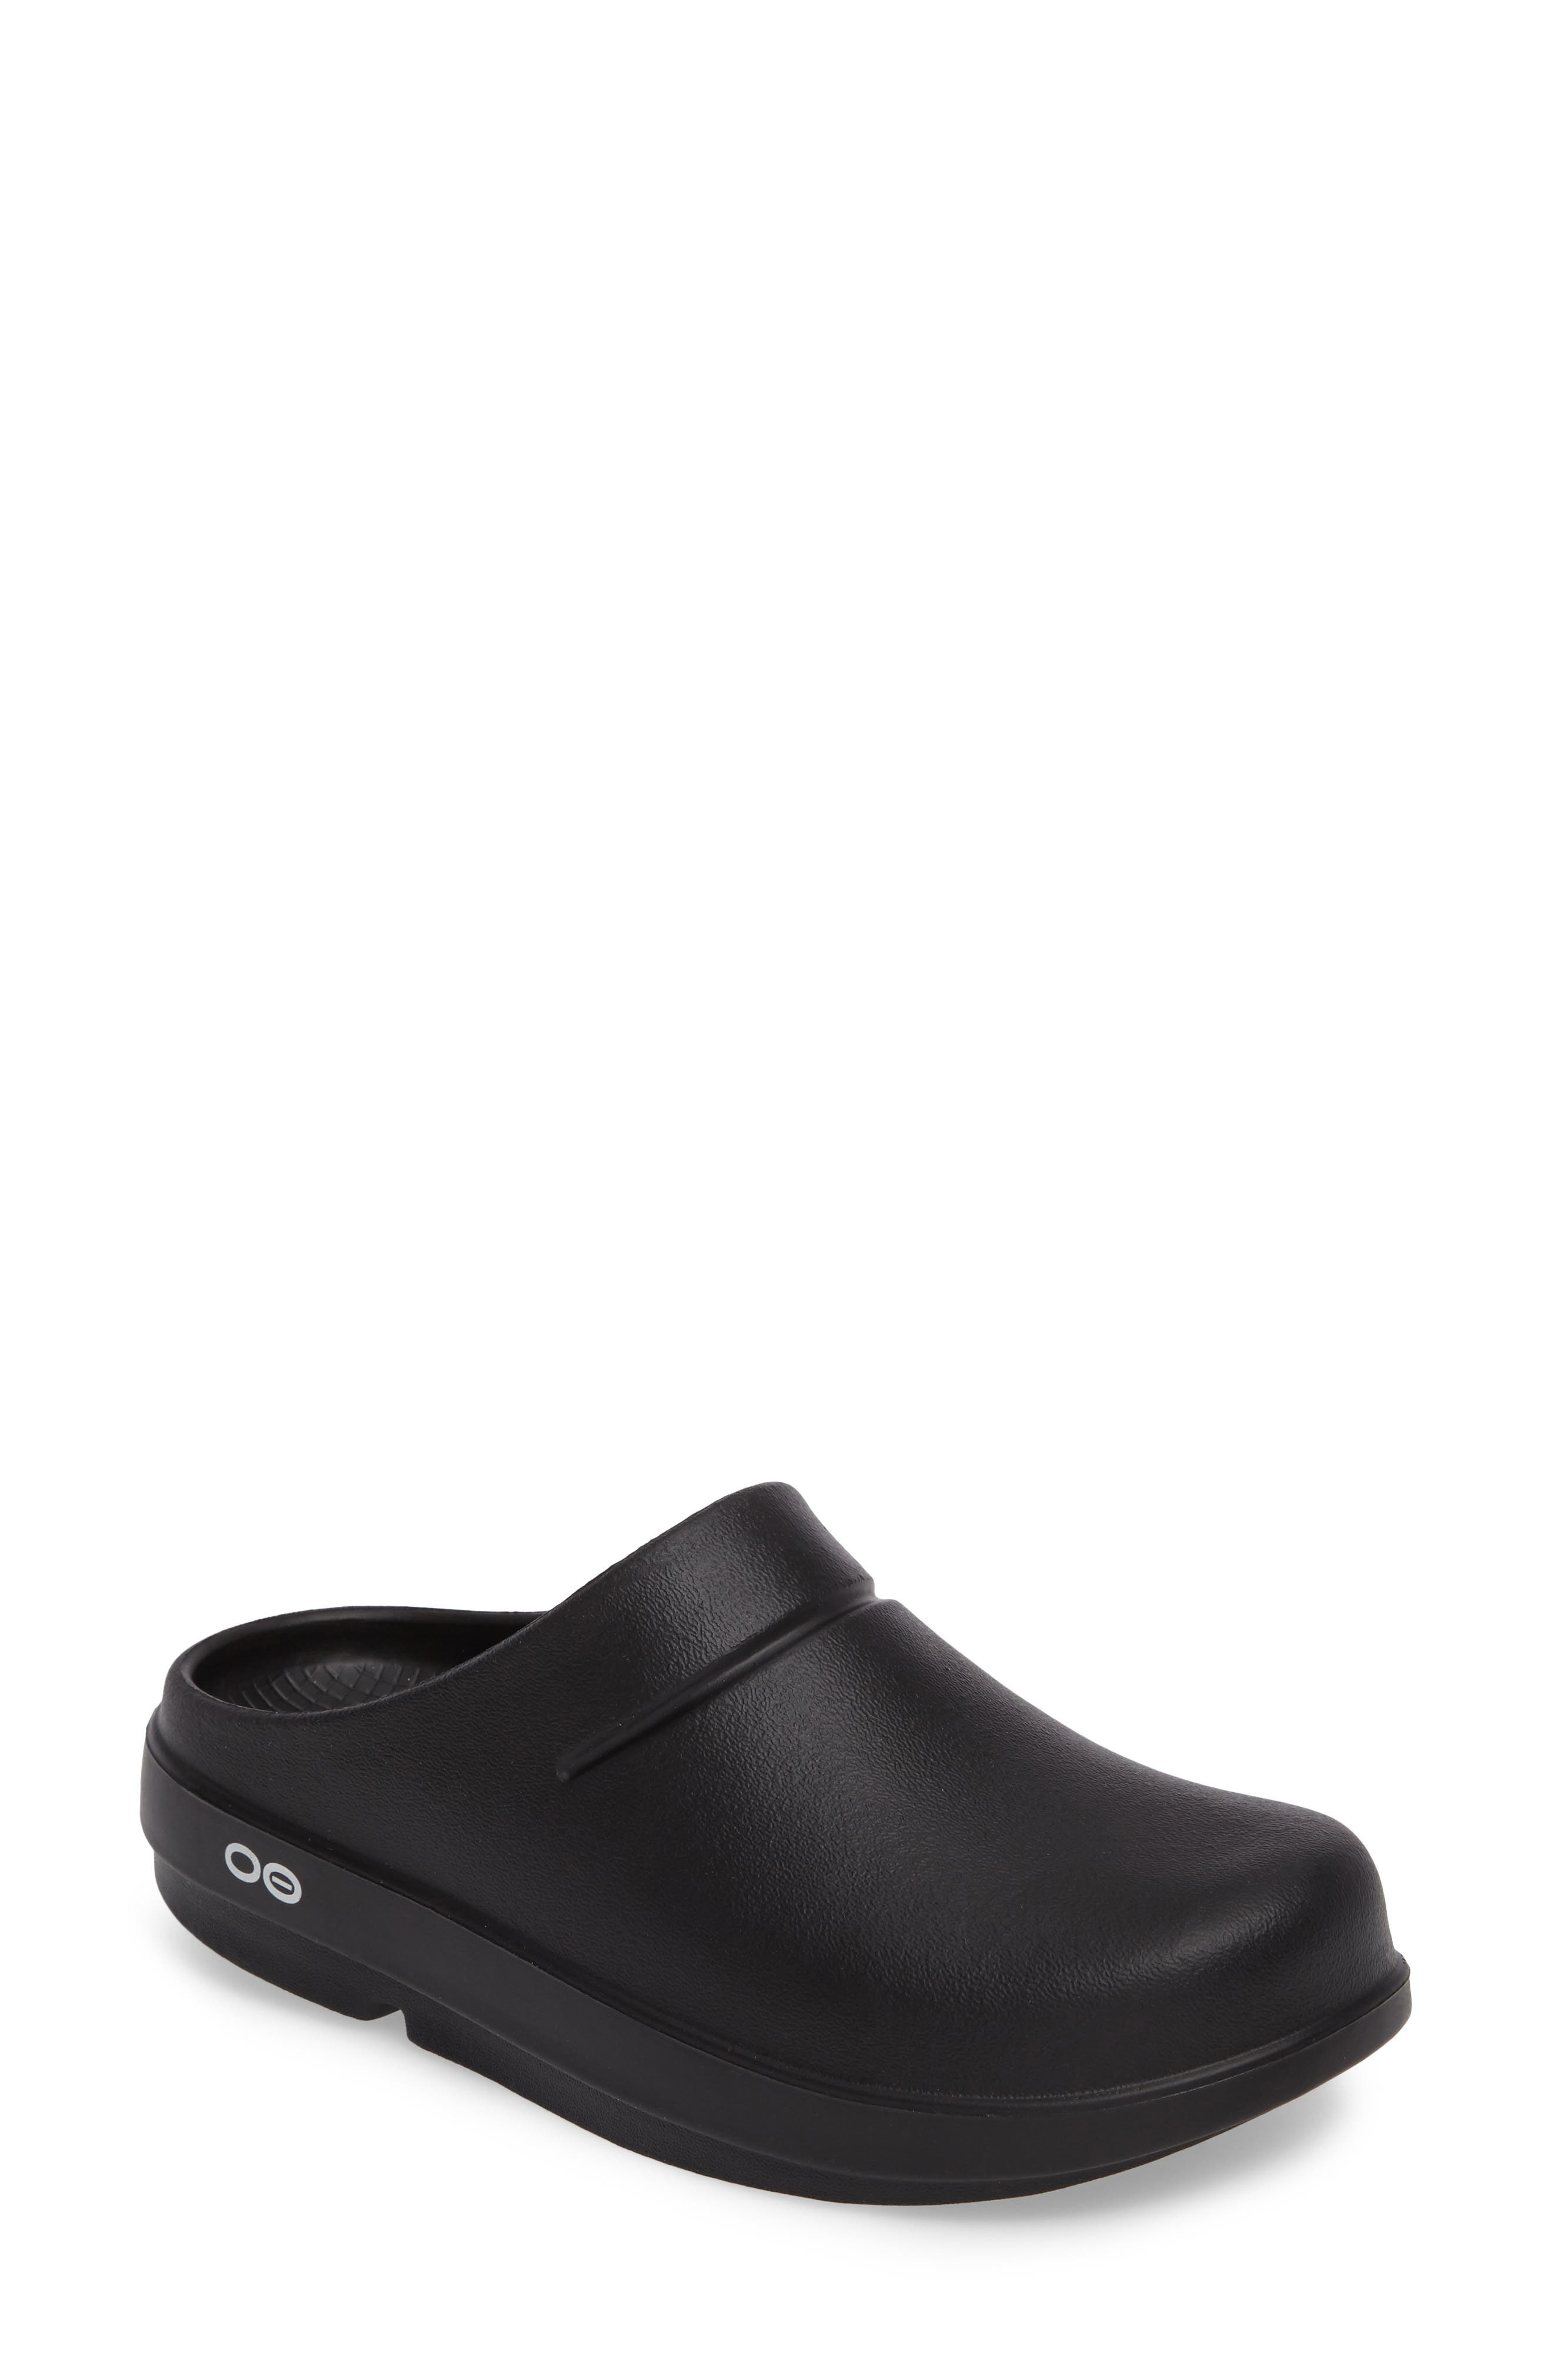 OOcloog Clog,                         Main,                         color, Black Matte